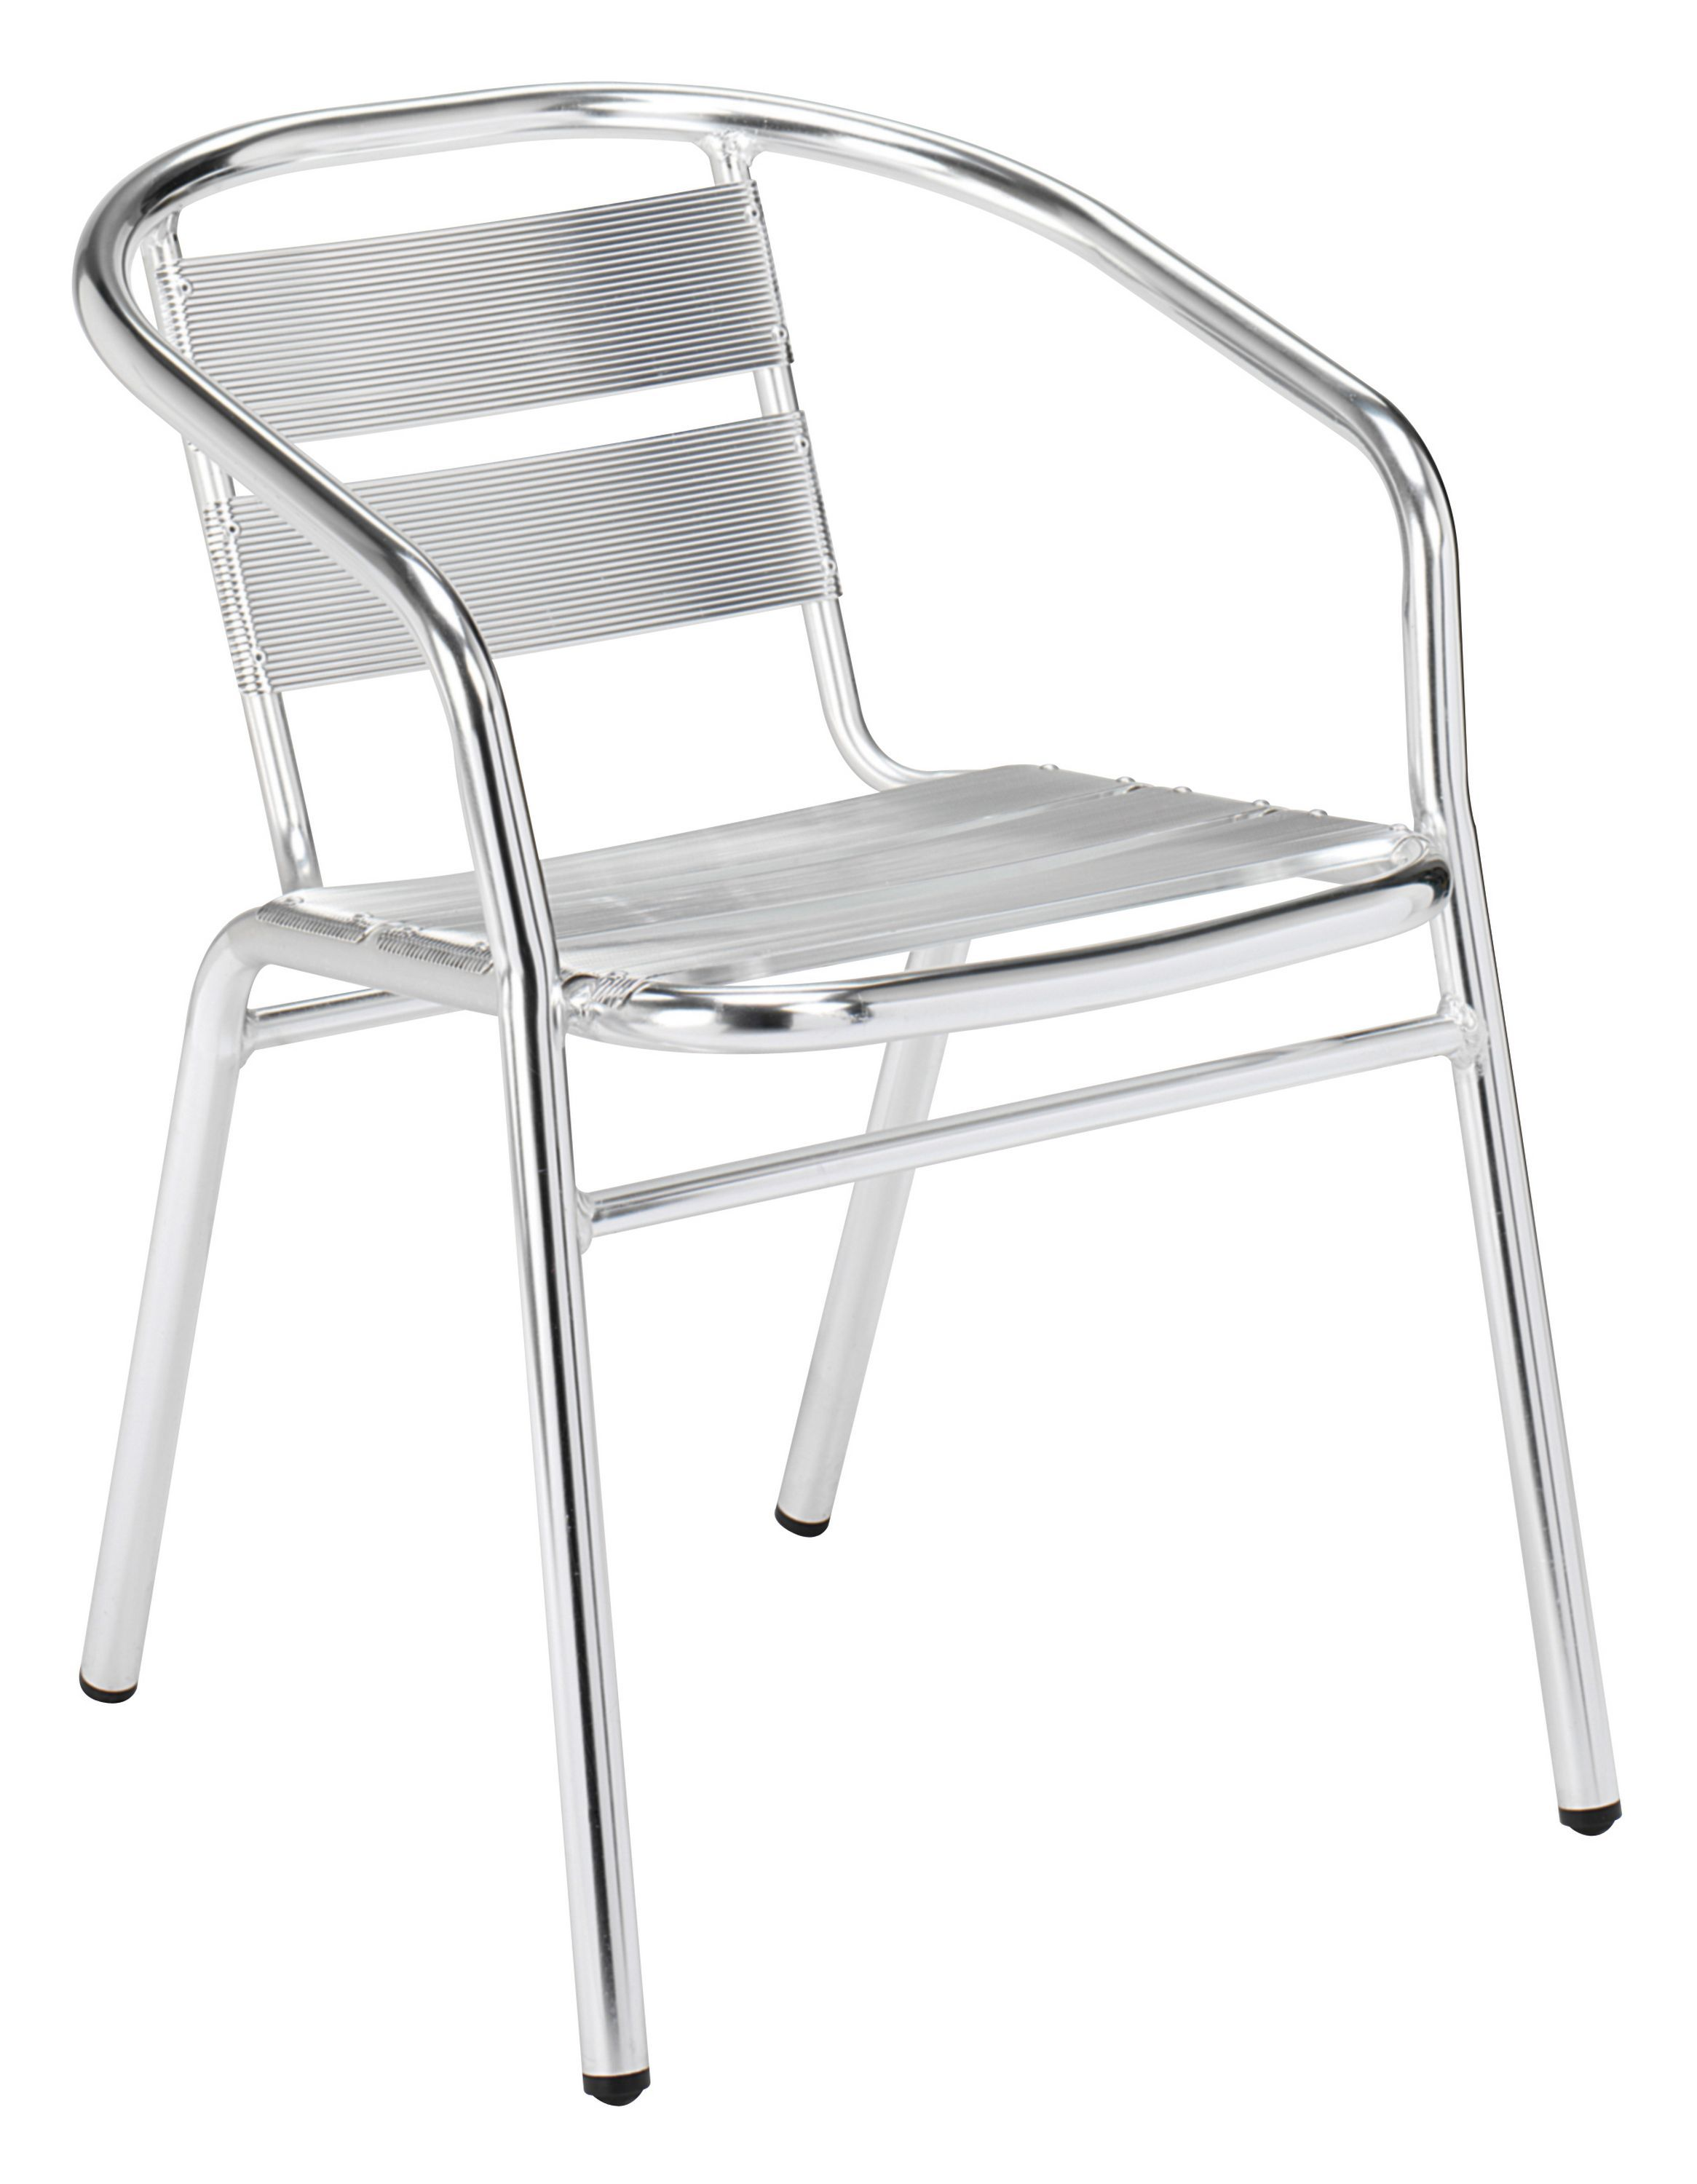 Outdoor cafe chairs - Stackable Bistro Chairs Outdoor Metal Bistro Chairs